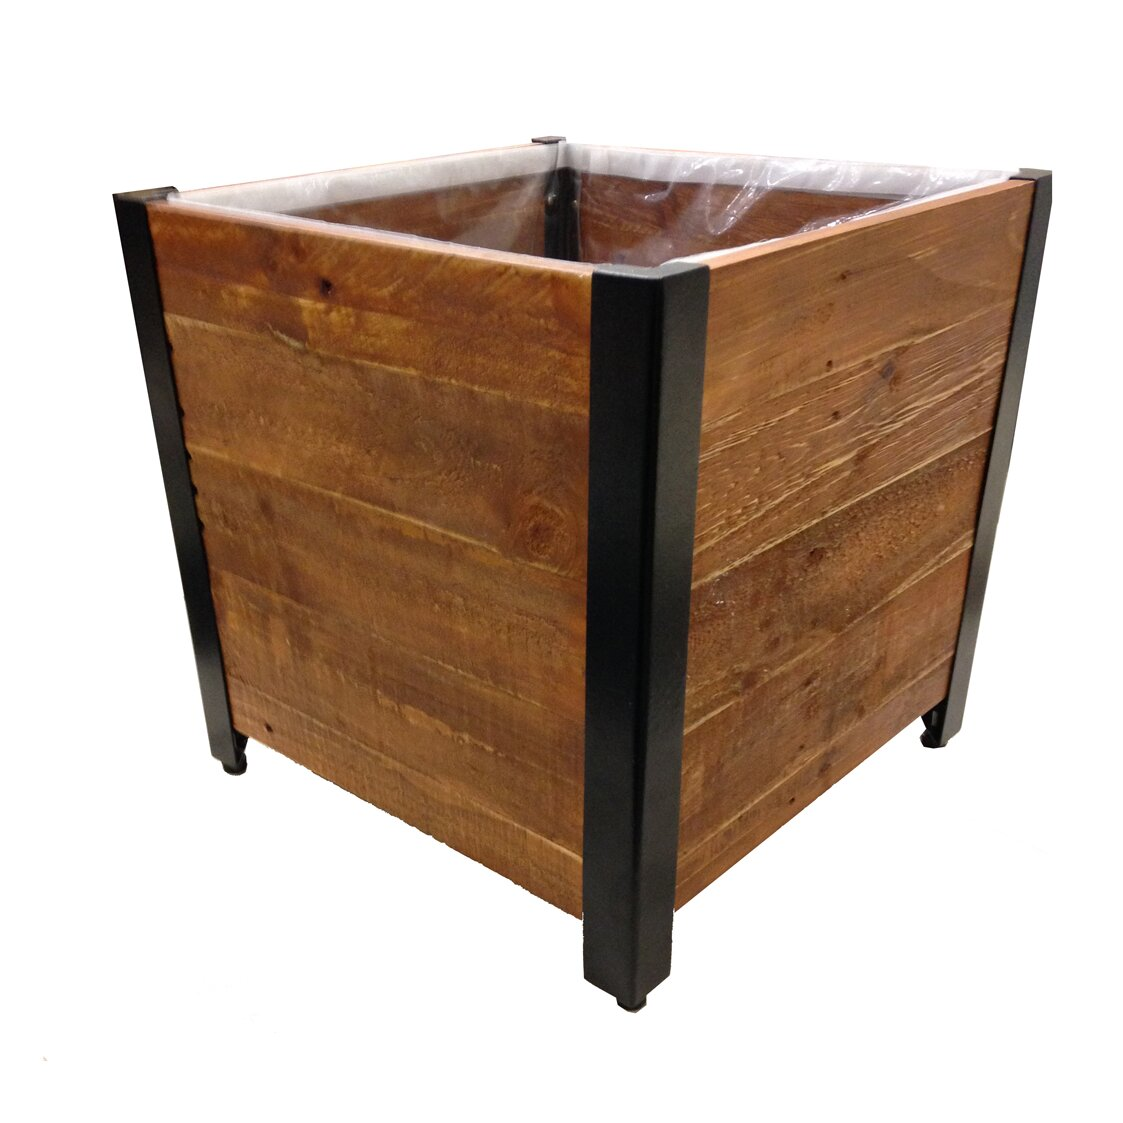 Grapevine square urban garden recycled wood planter box for Wayfair garden box